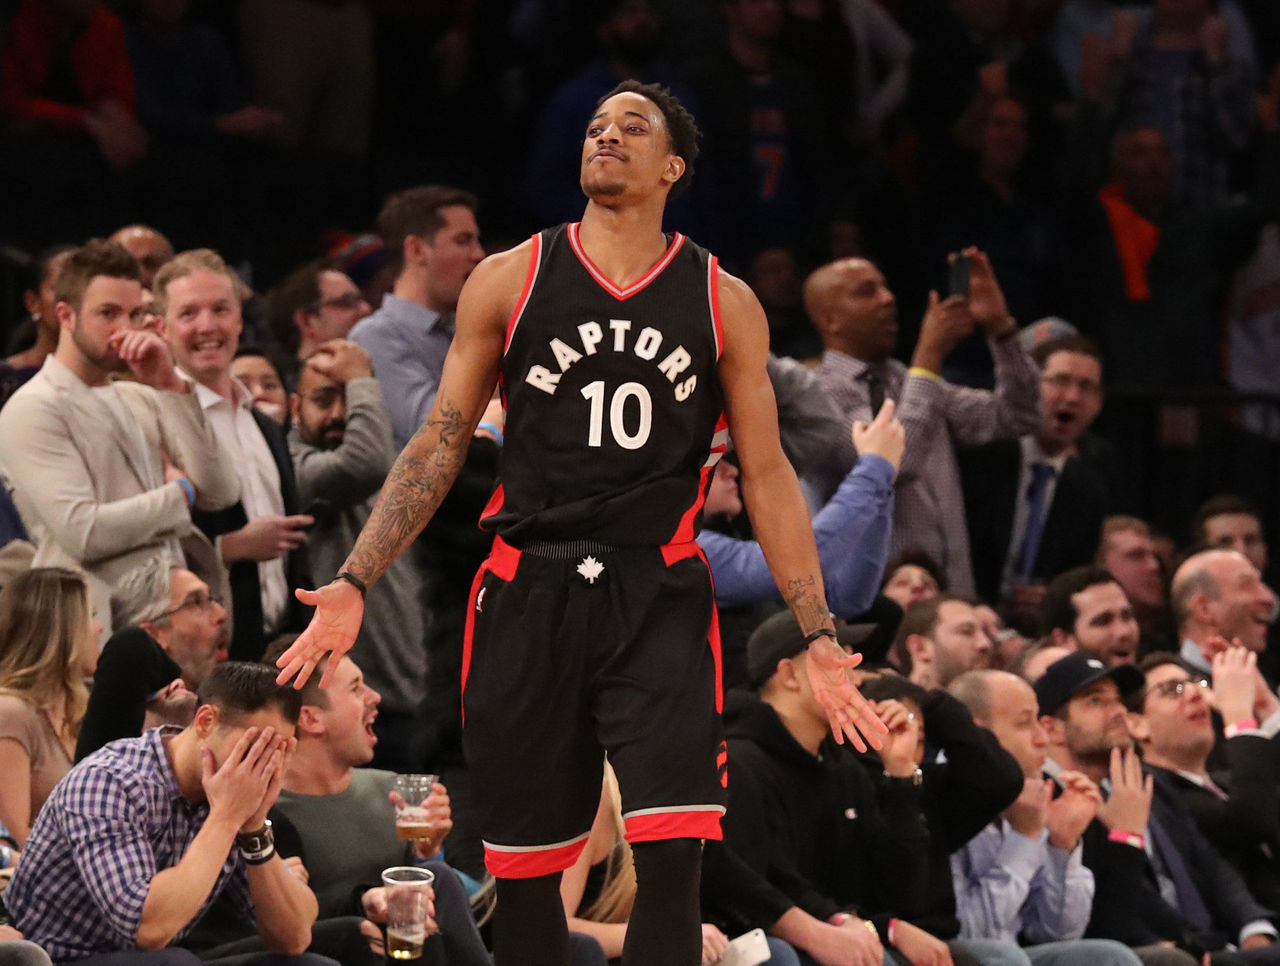 Cropped_2017-02-28t025902z_671954606_nocid_rtrmadp_3_nba-toronto-raptors-at-new-york-knicks